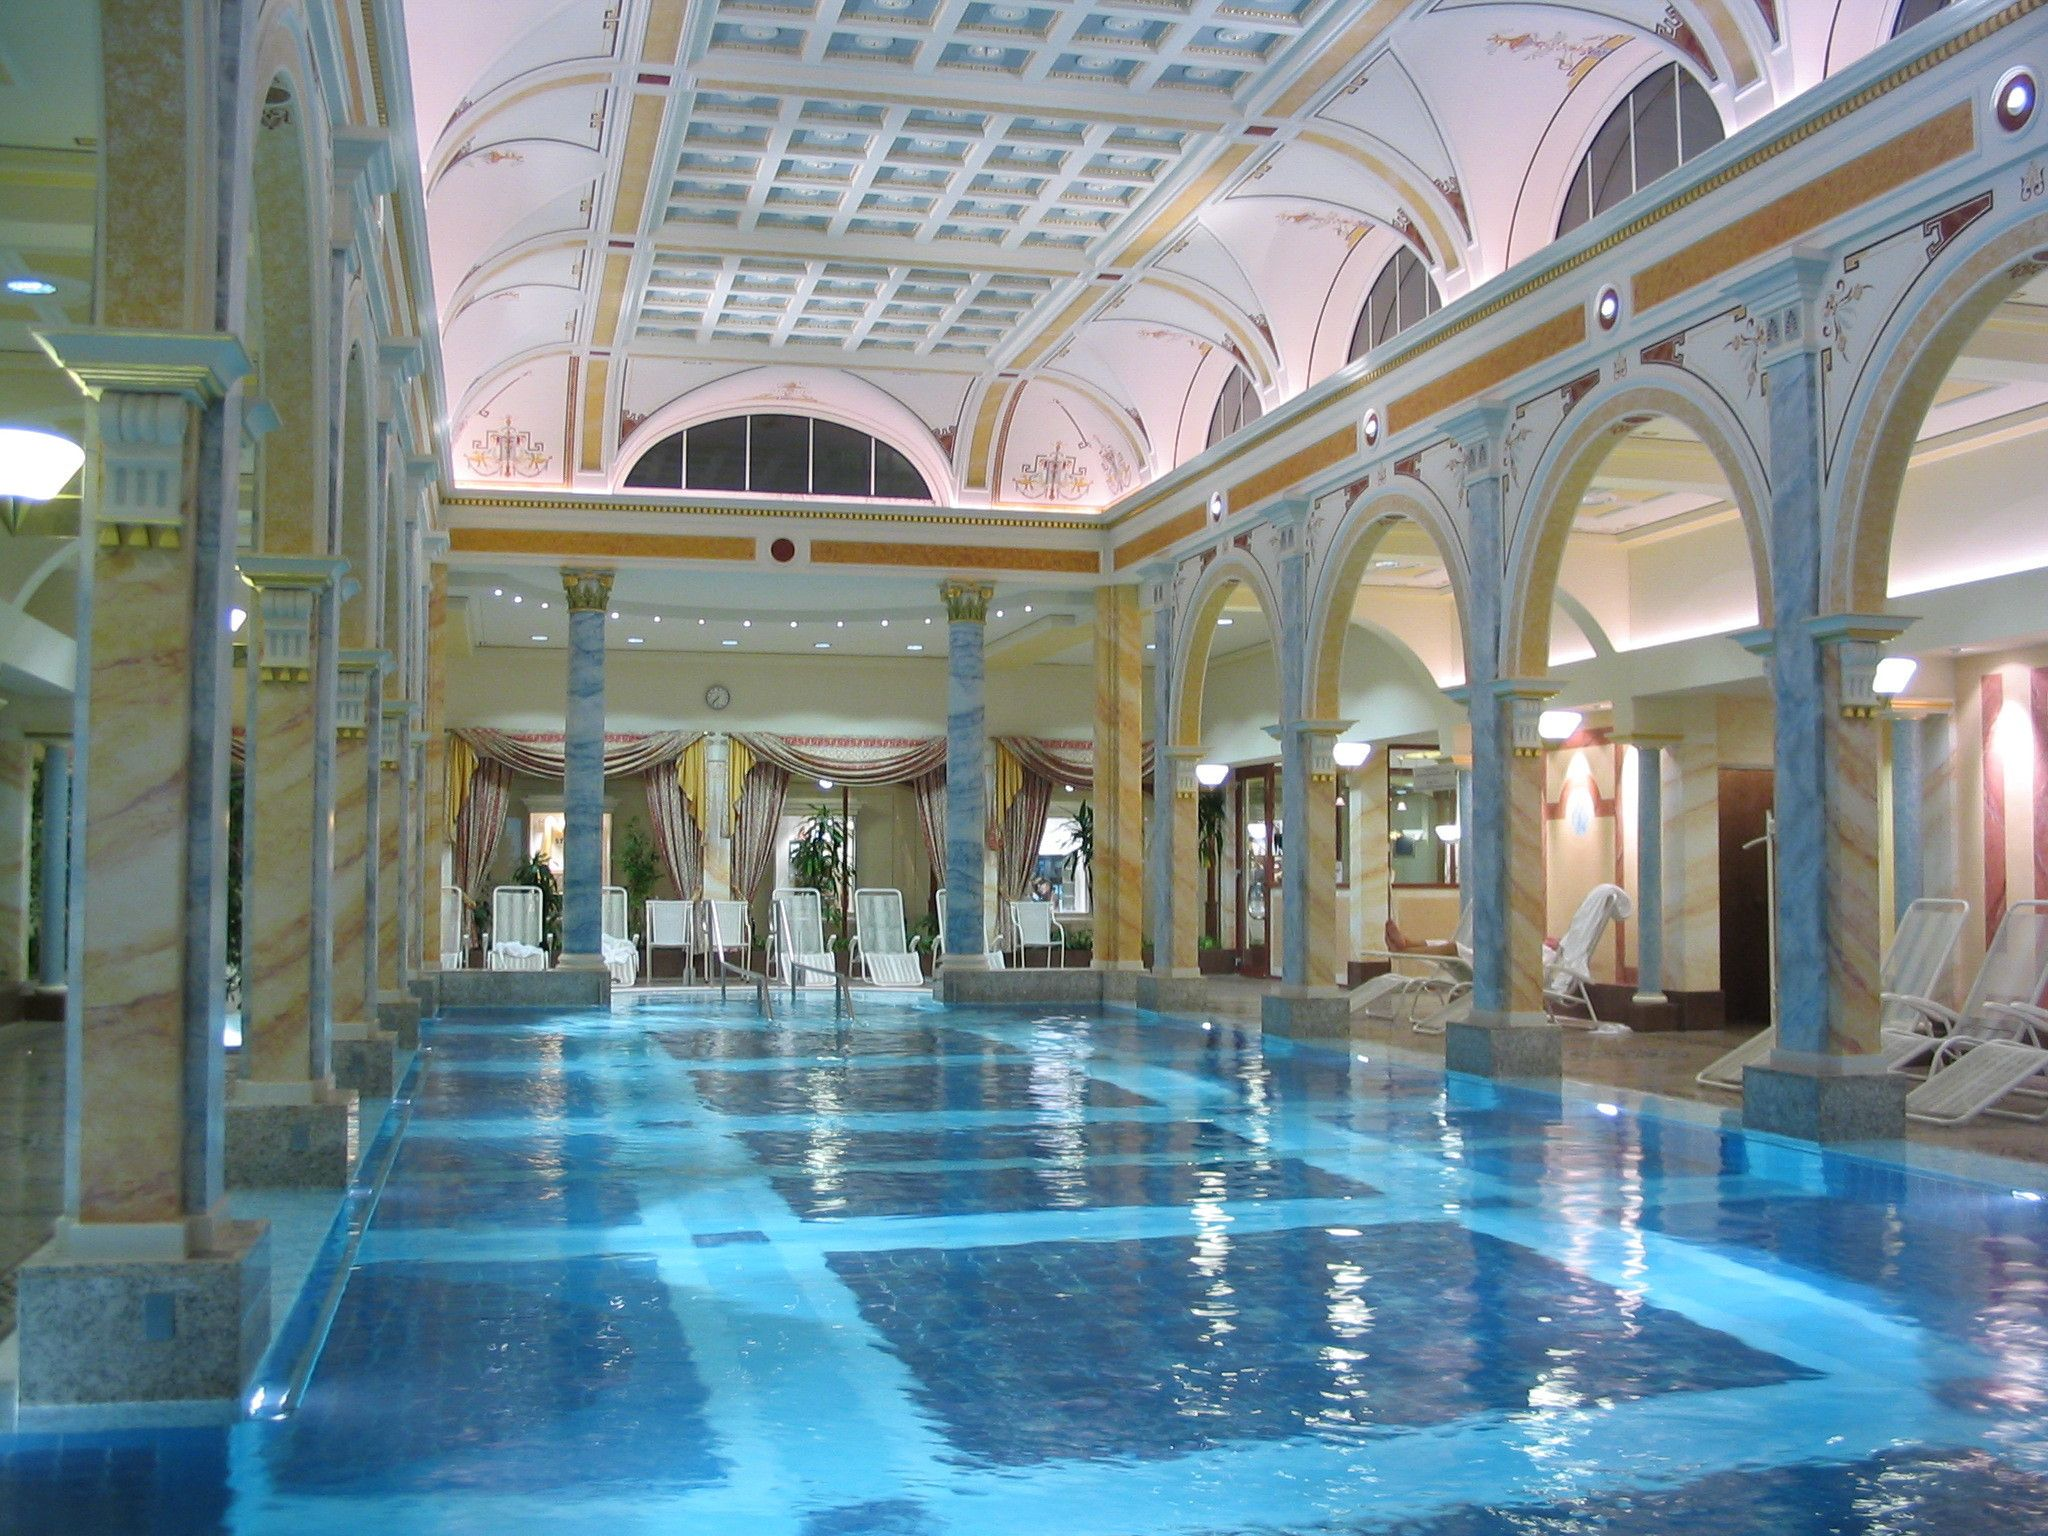 Cool Indoor Swimming Pools image search: indoor pools sweet home - luxury house with indoor